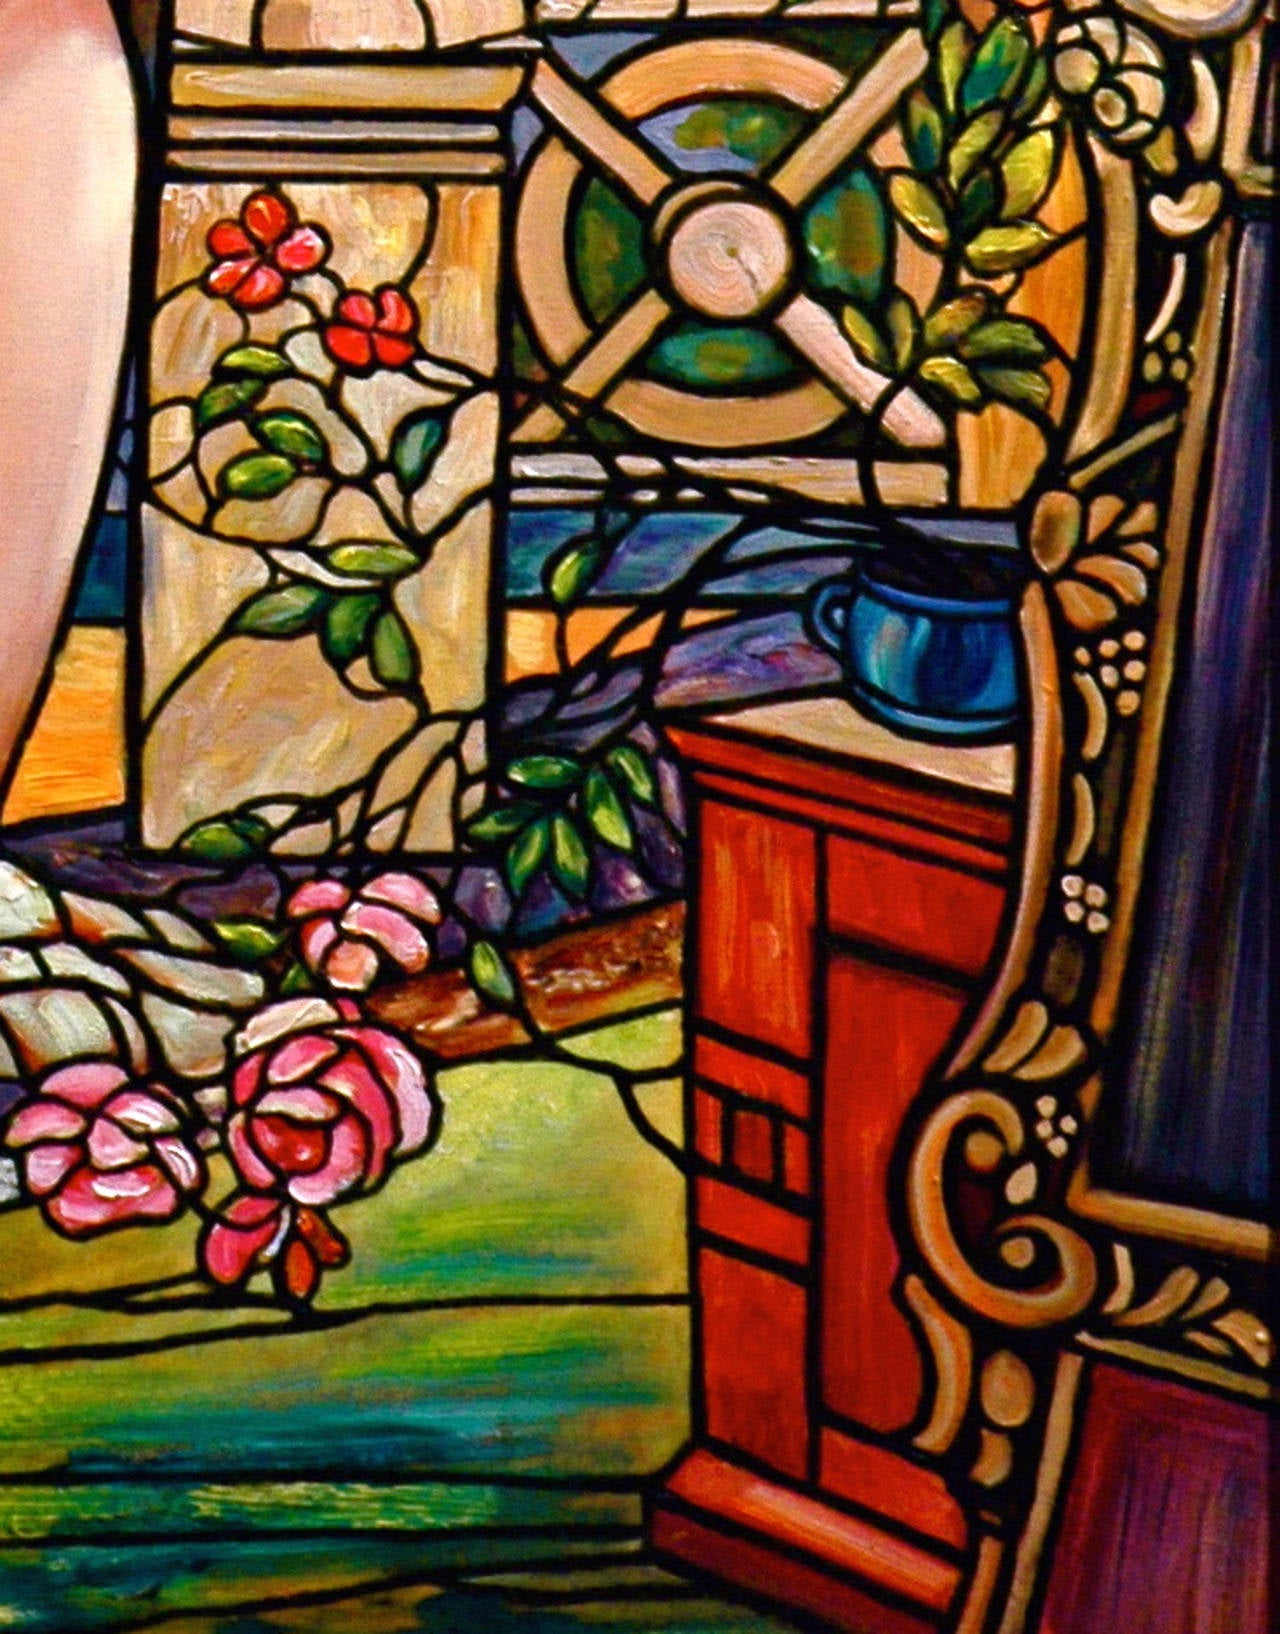 This piece is a bold depiction of interior scene of a nude woman putting jewels in her hair. Nemethy uses techniques borrowed from early Tiffany stained glass windows, giving this piece an effect which seems to light up and as if it is made of